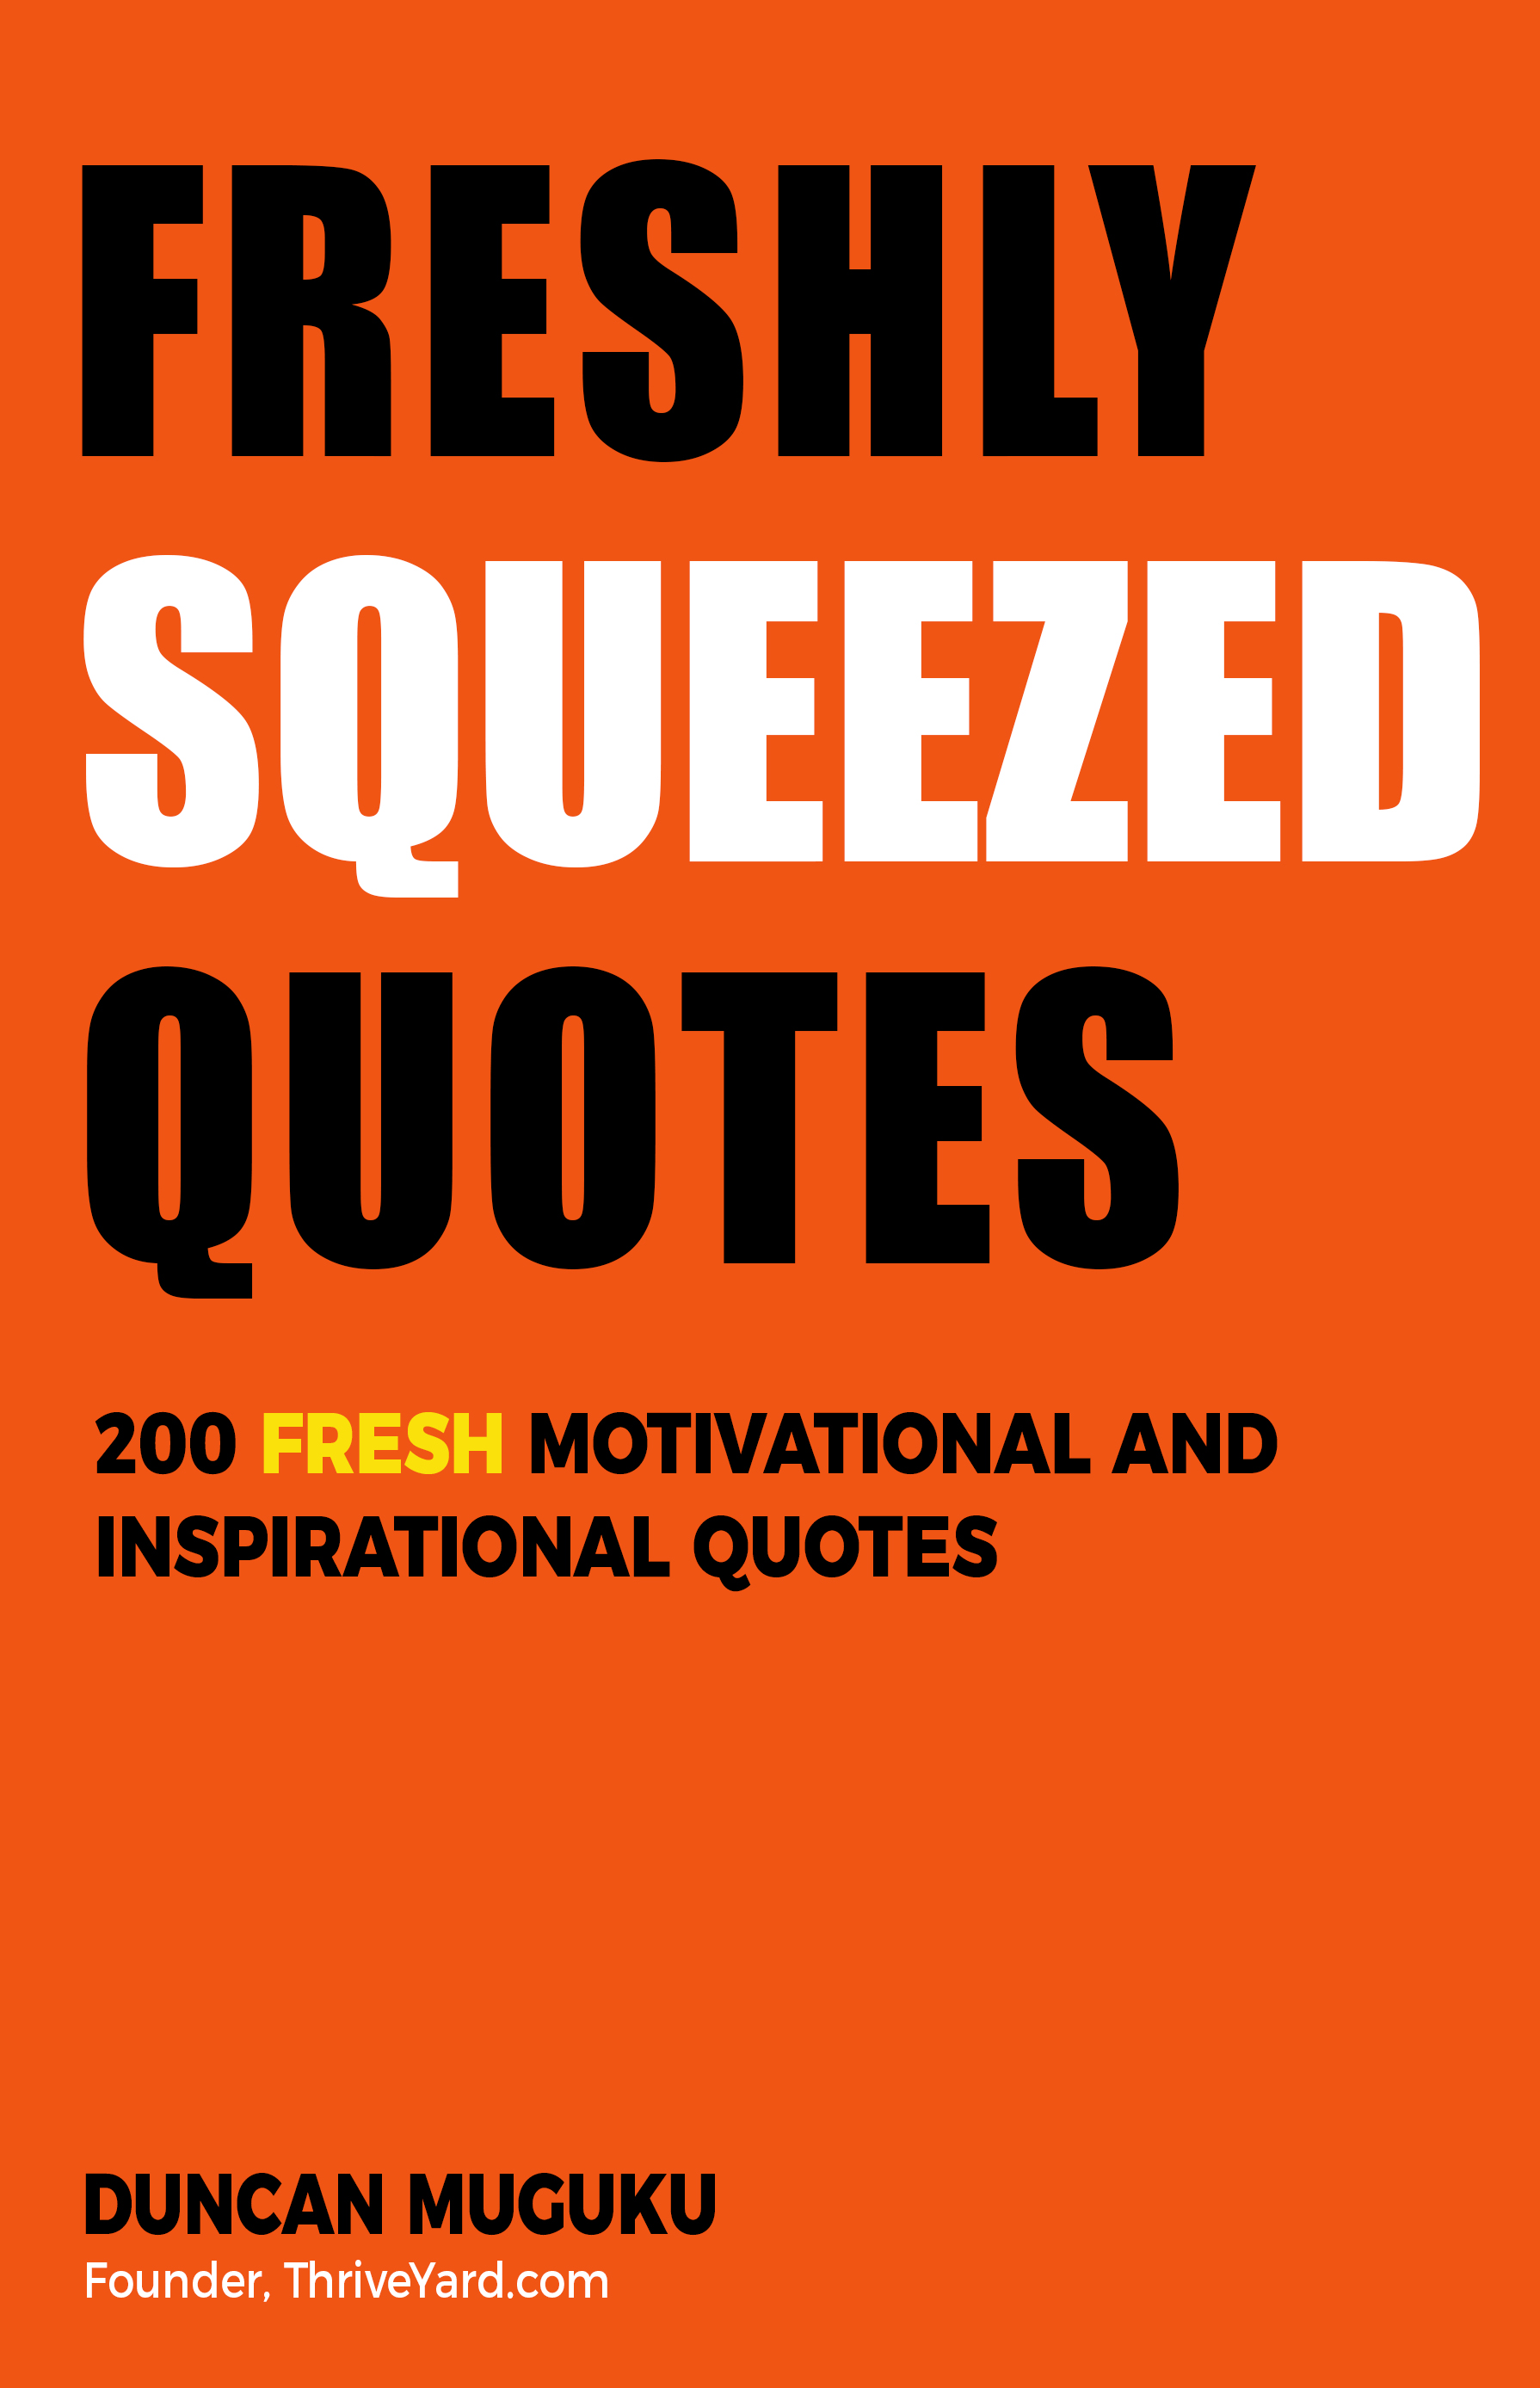 Freshly Squeezed Quotes